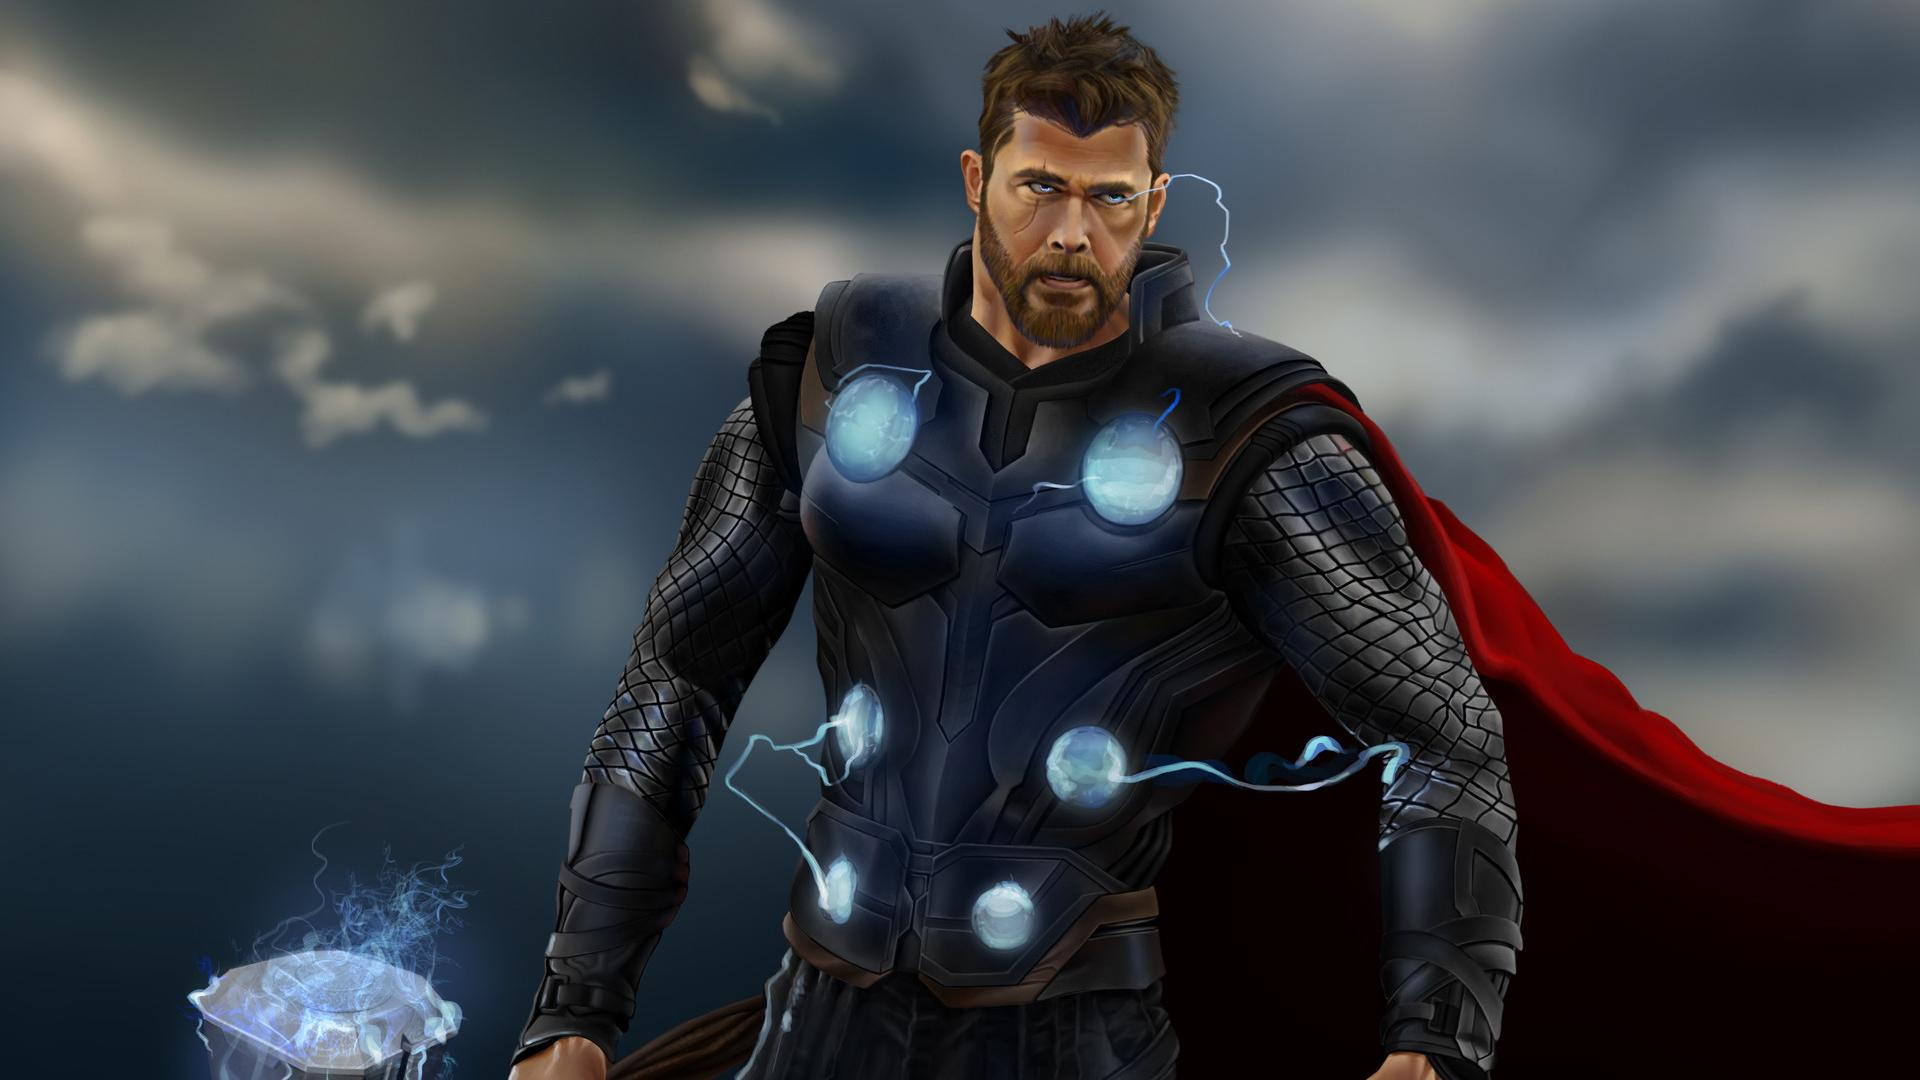 Thor 2019 Wallpapers Wallpaper Cave